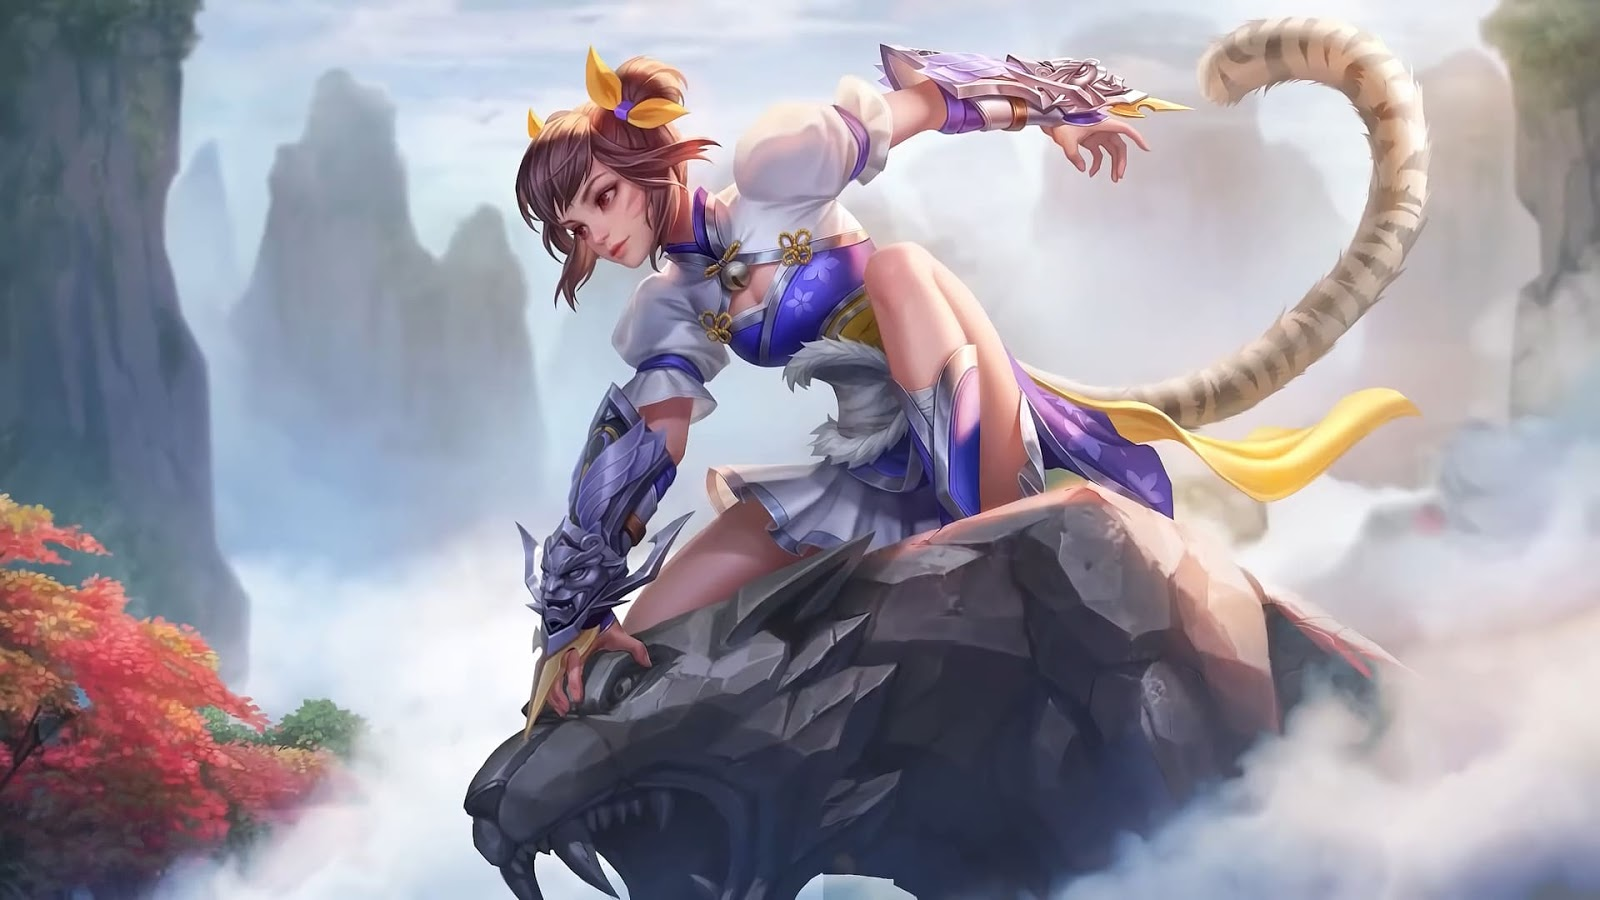 5+ Wallpaper Wanwan Mobile Legends Full HD For PC, Android